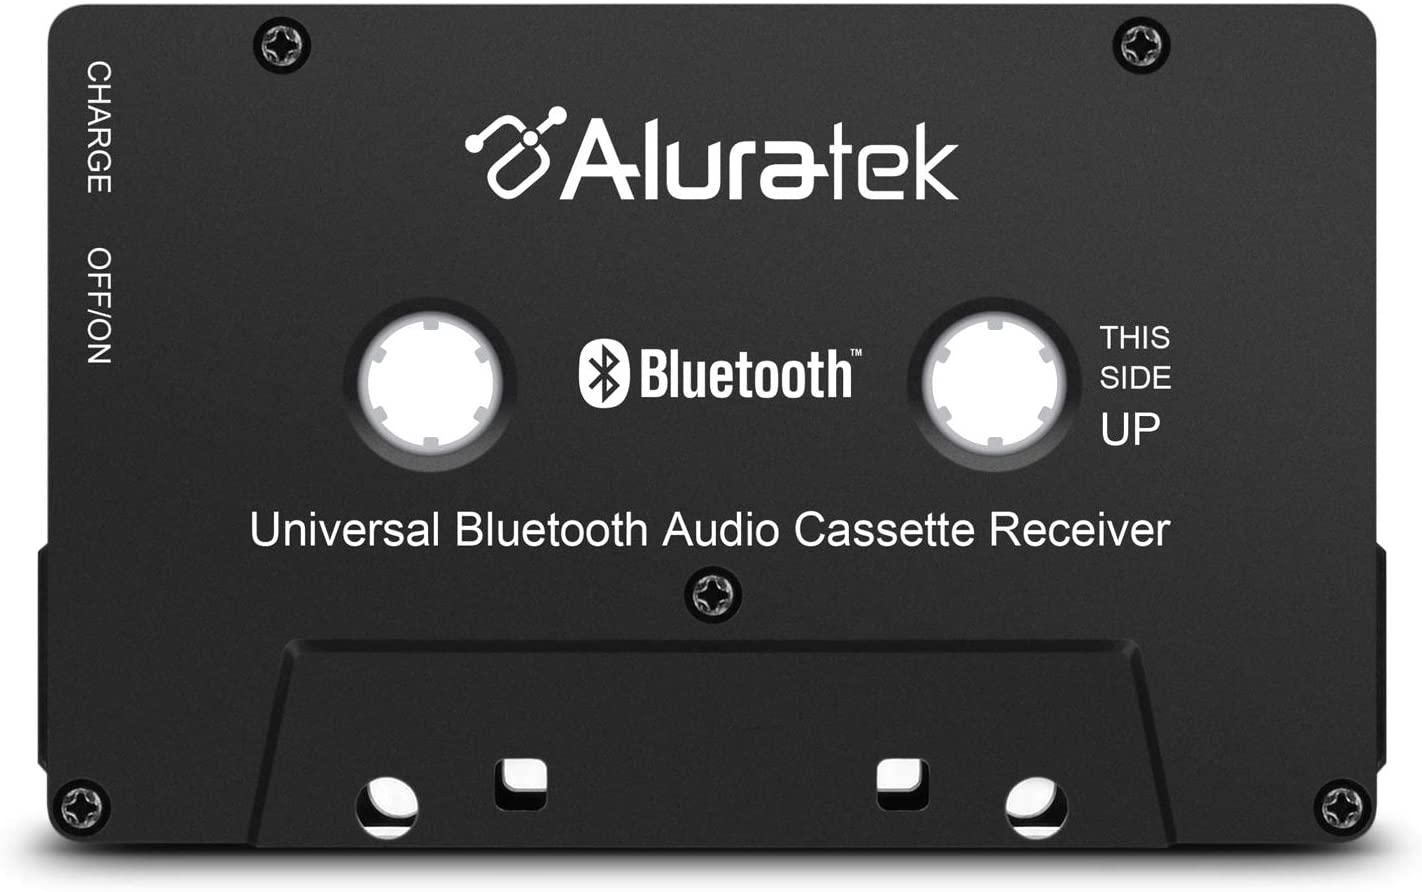 Aluratek Universal Bluetooth Audio Cassette Receiver with Built-in Battery for Car, Boombox, Stereo, RV (ABCT01F)